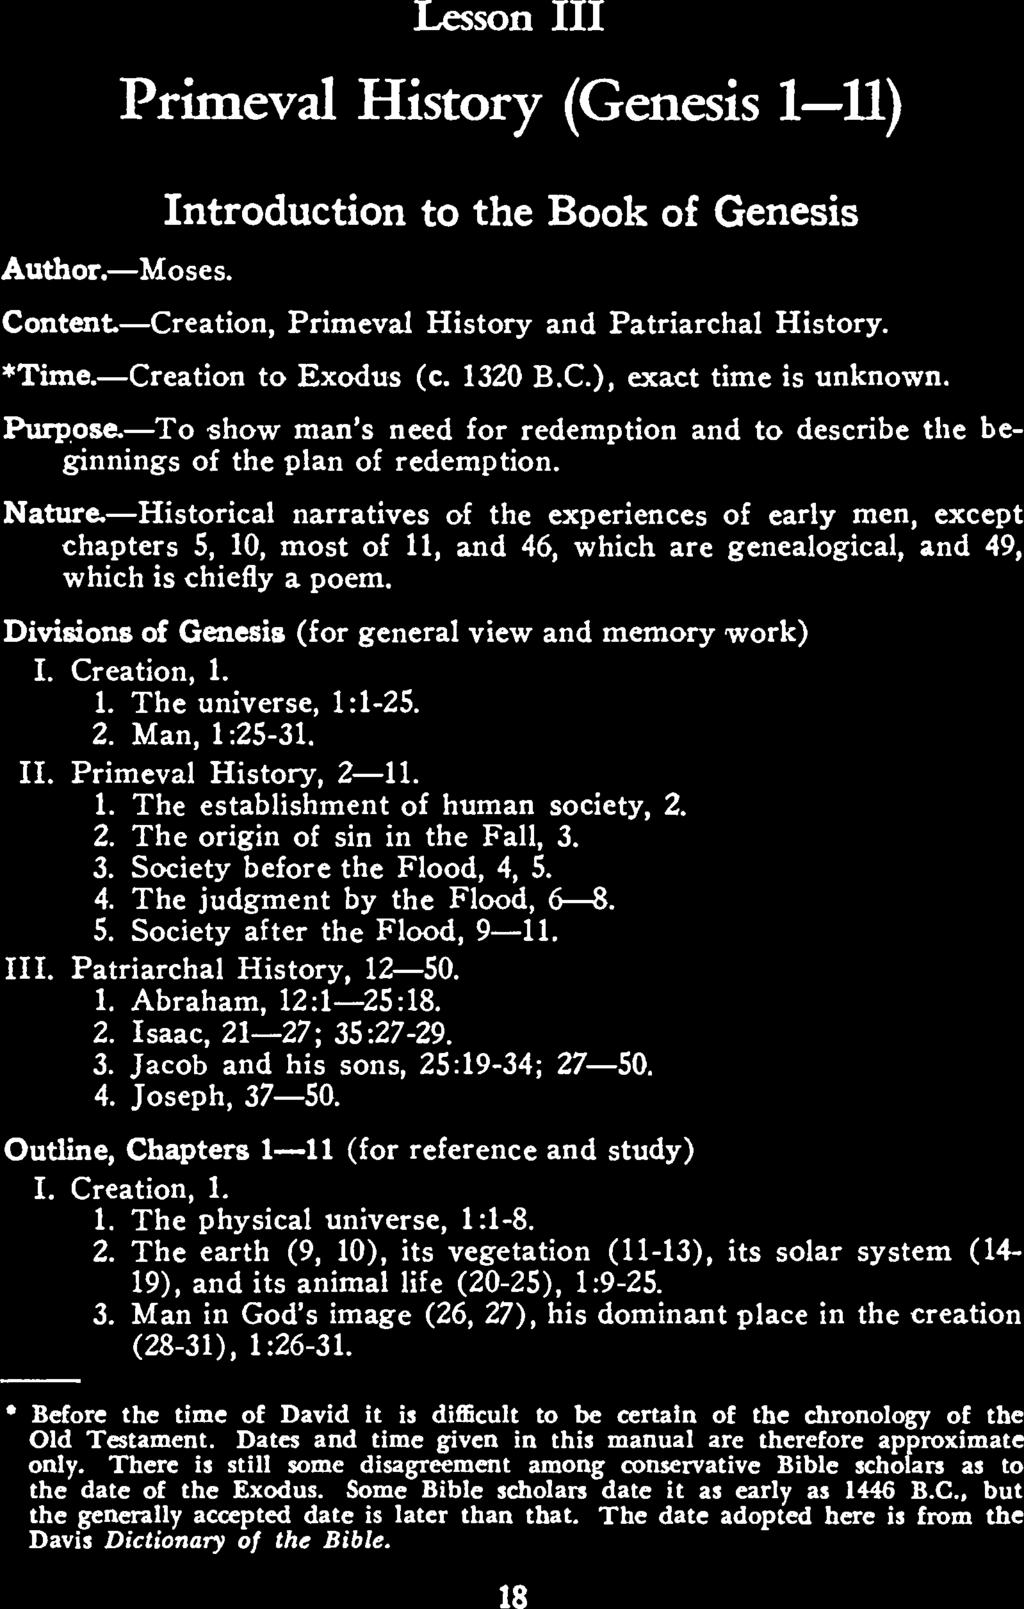 Lesson III Primevl History (Genesis 1 11) Introduction to the Book of Genesis Author. Moses. Content Cretion, Primevl History nd Ptrirchl History. Time. Cretion to Exodus (c. 1320 B.C.), exct time is unknown.